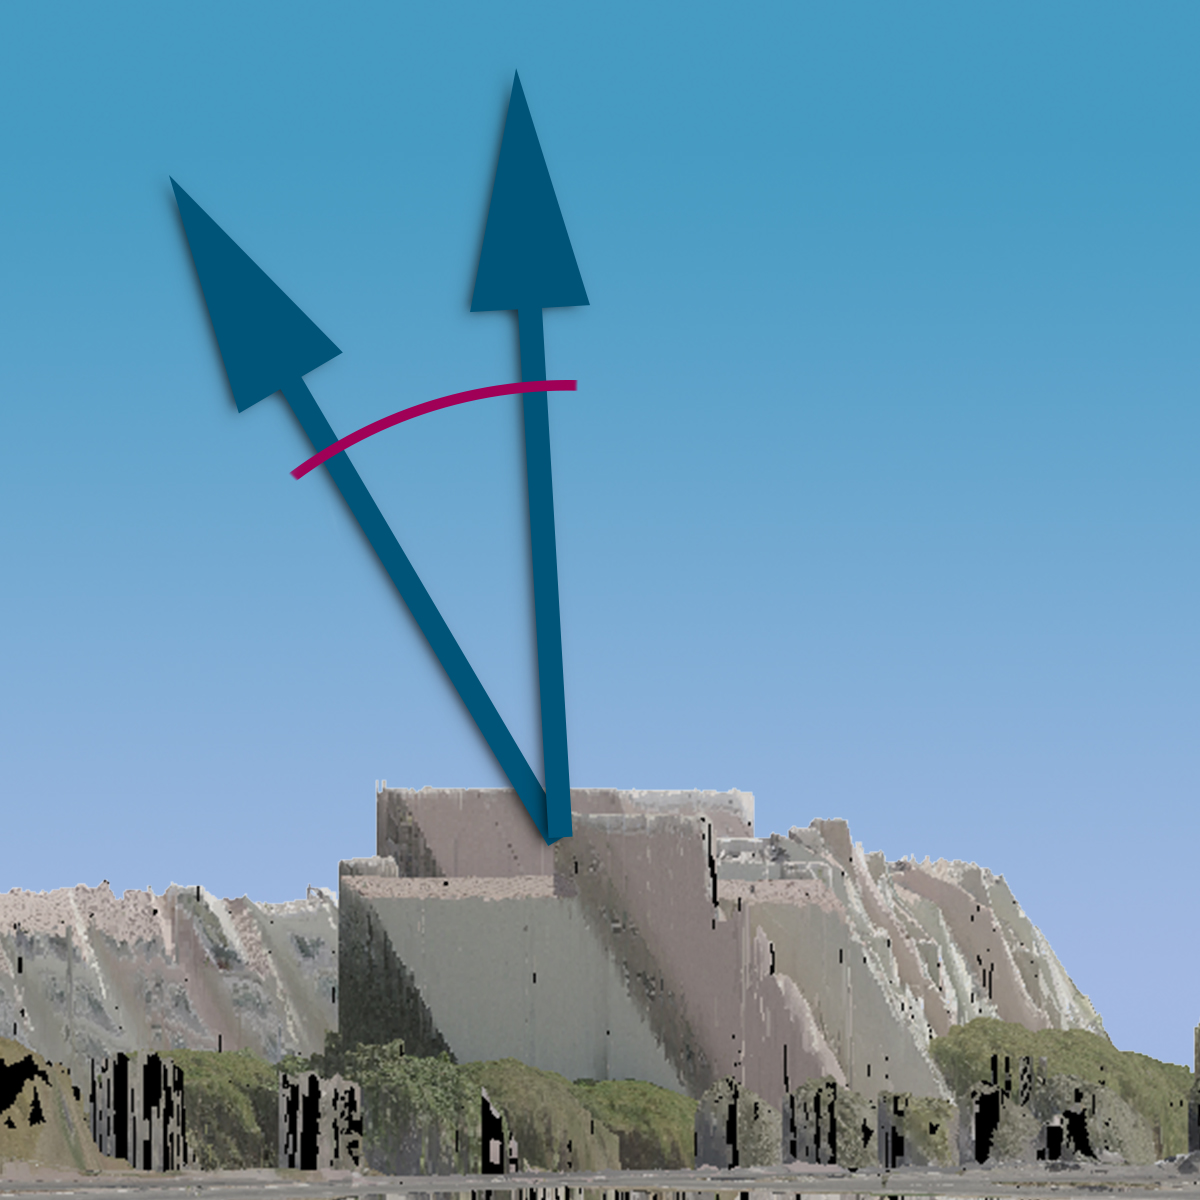 Elevation view of the skewed 3D model (skew angle approximately 30°).